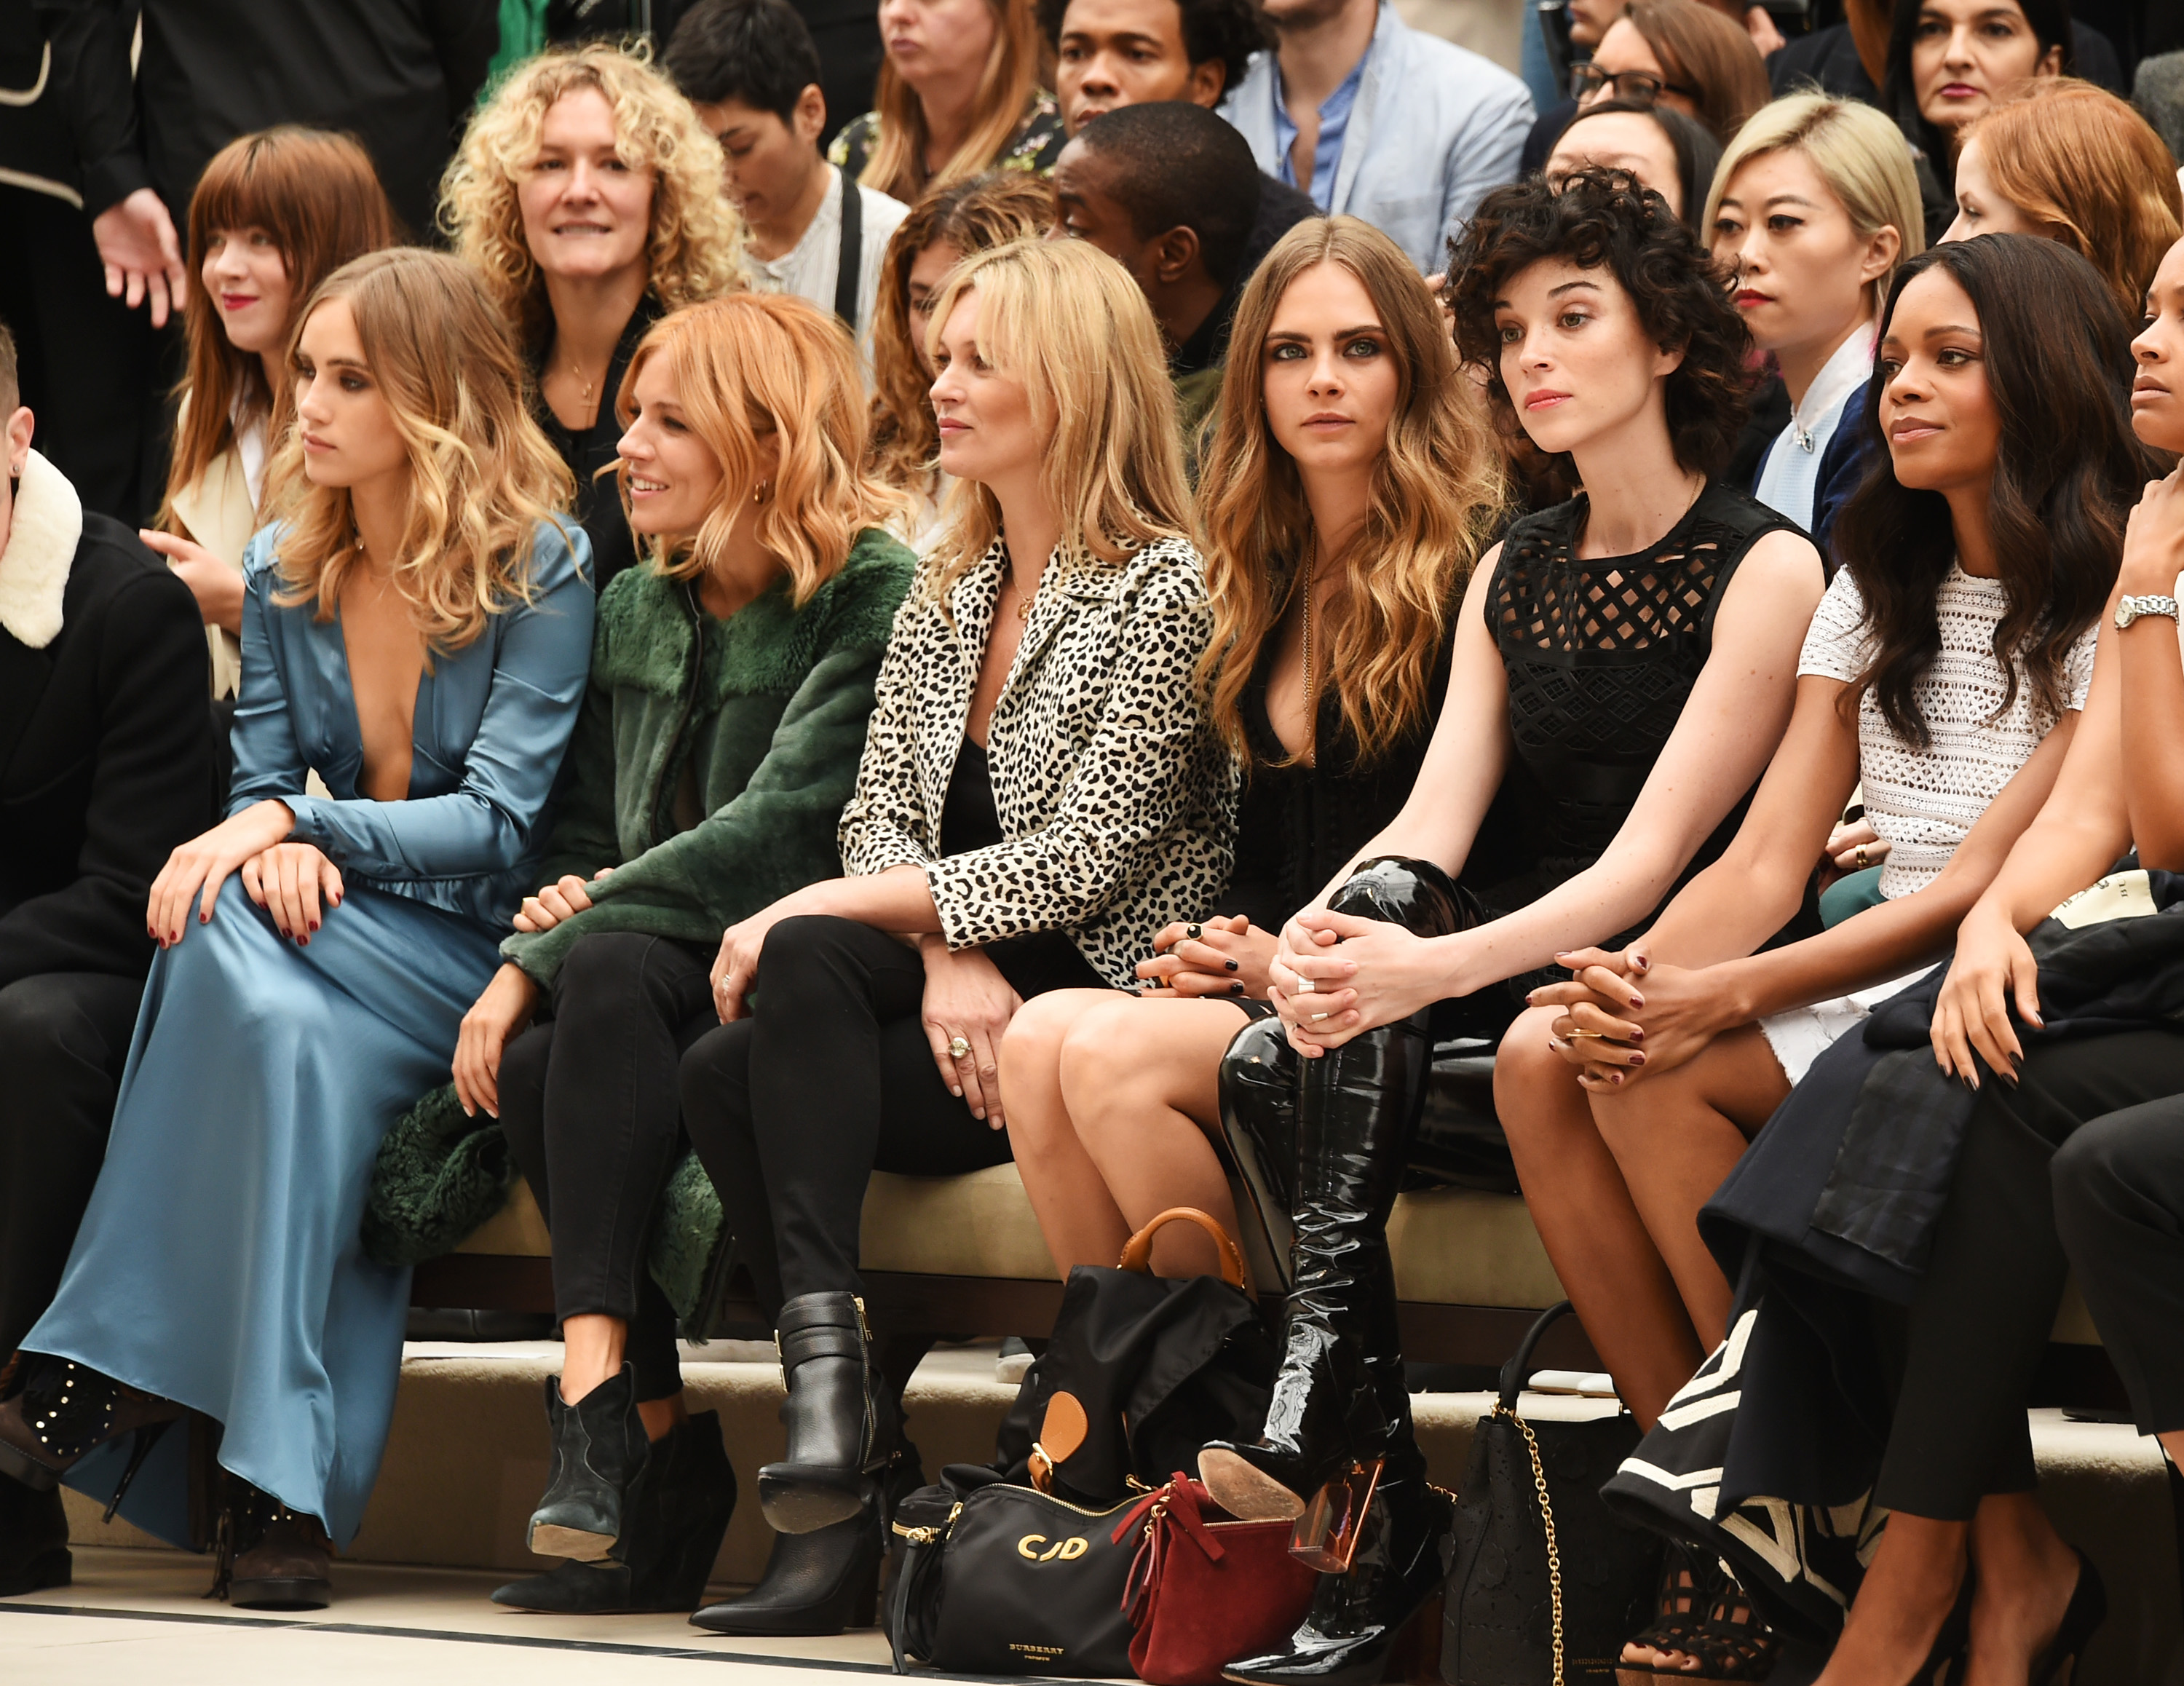 Proving its worth as the hottest ticket in London, Burberry Prorsum produced a front row of an all-star line-up complete with the best the Brits have to offer – trenches, a Bond girl and, of course, Kate Moss.